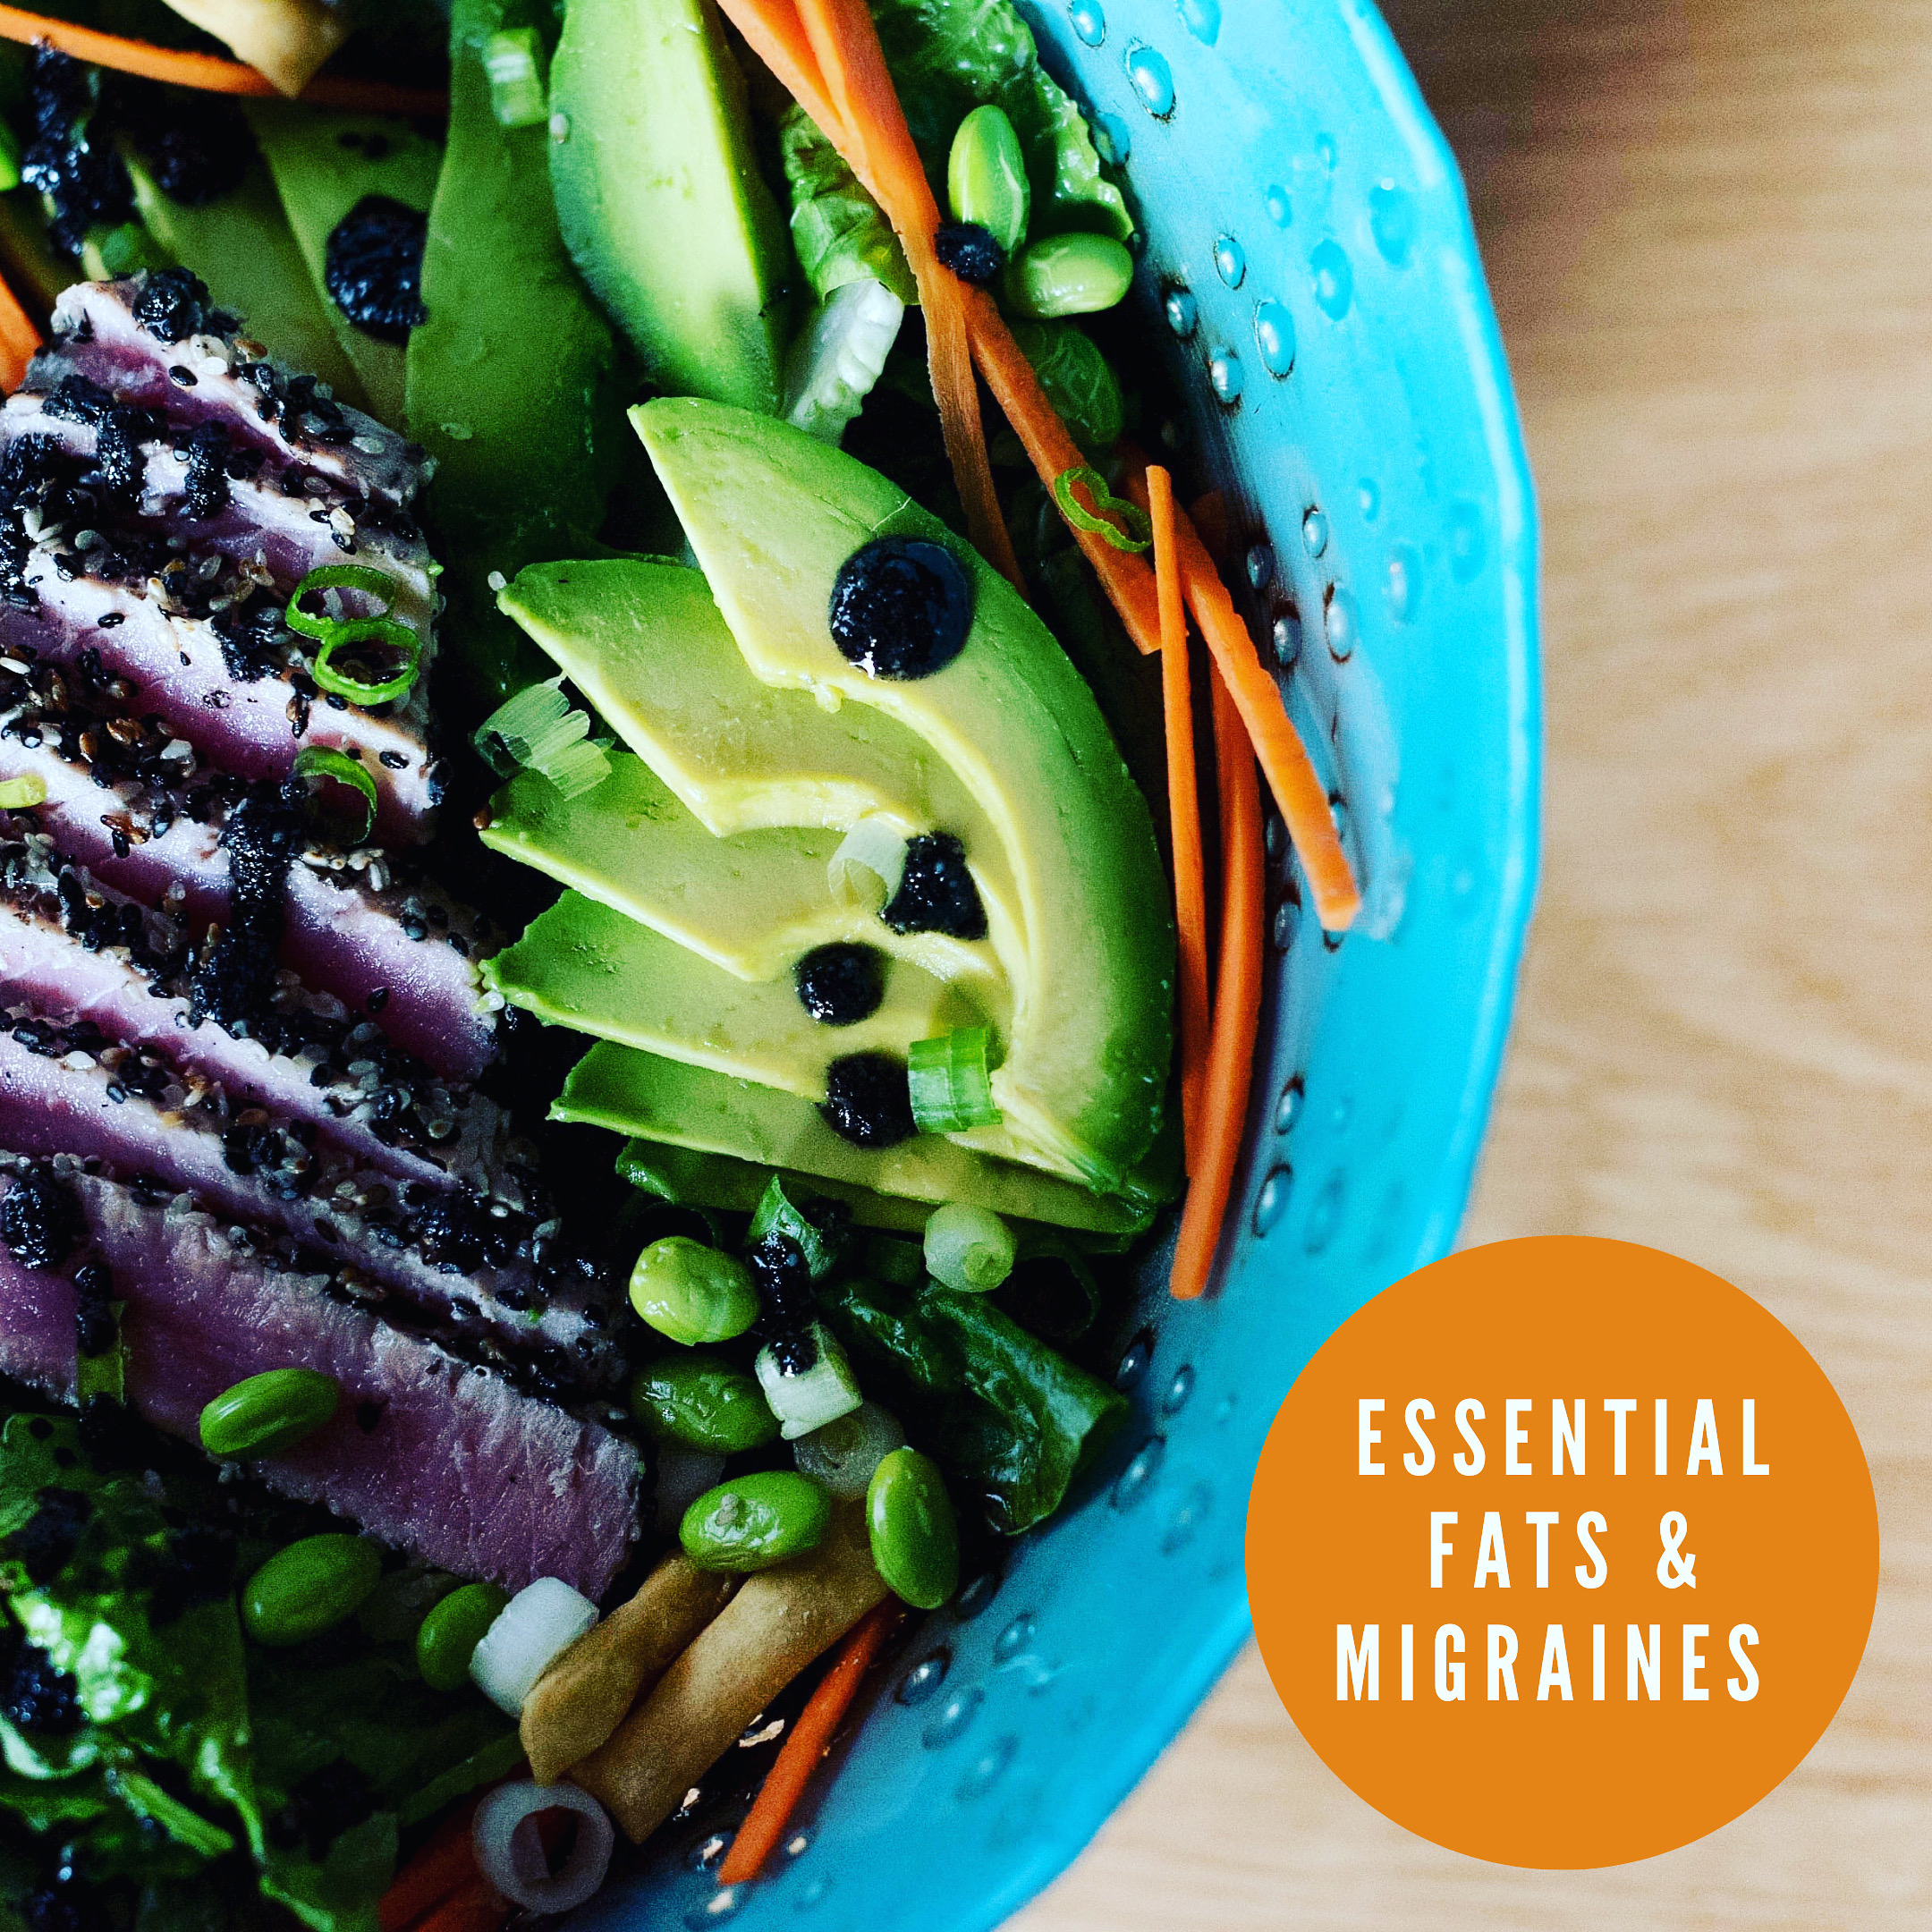 Essential Fats and Migraines